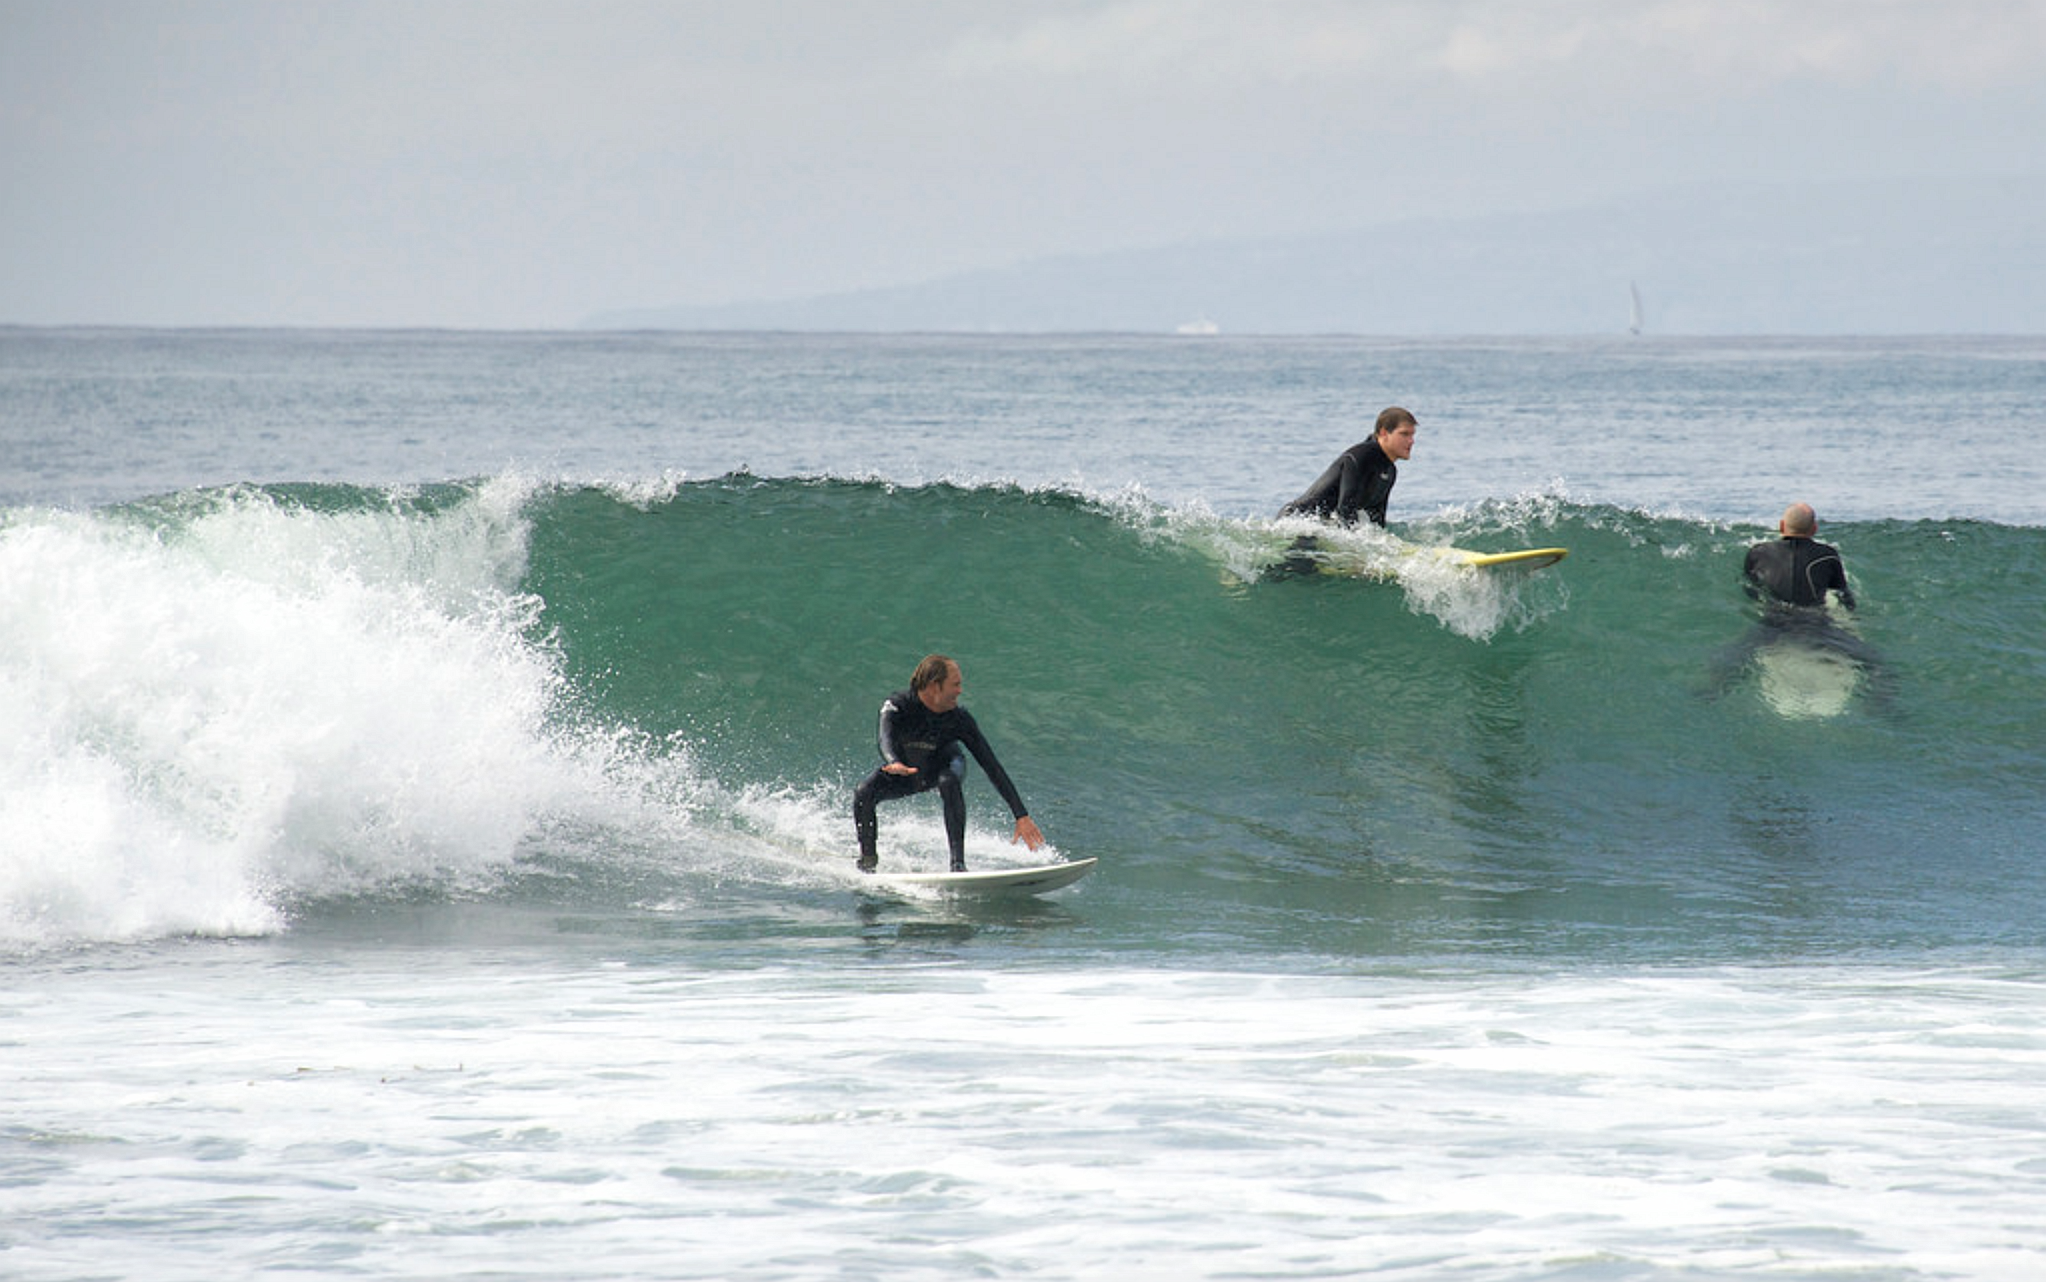 Surfing in Malibu